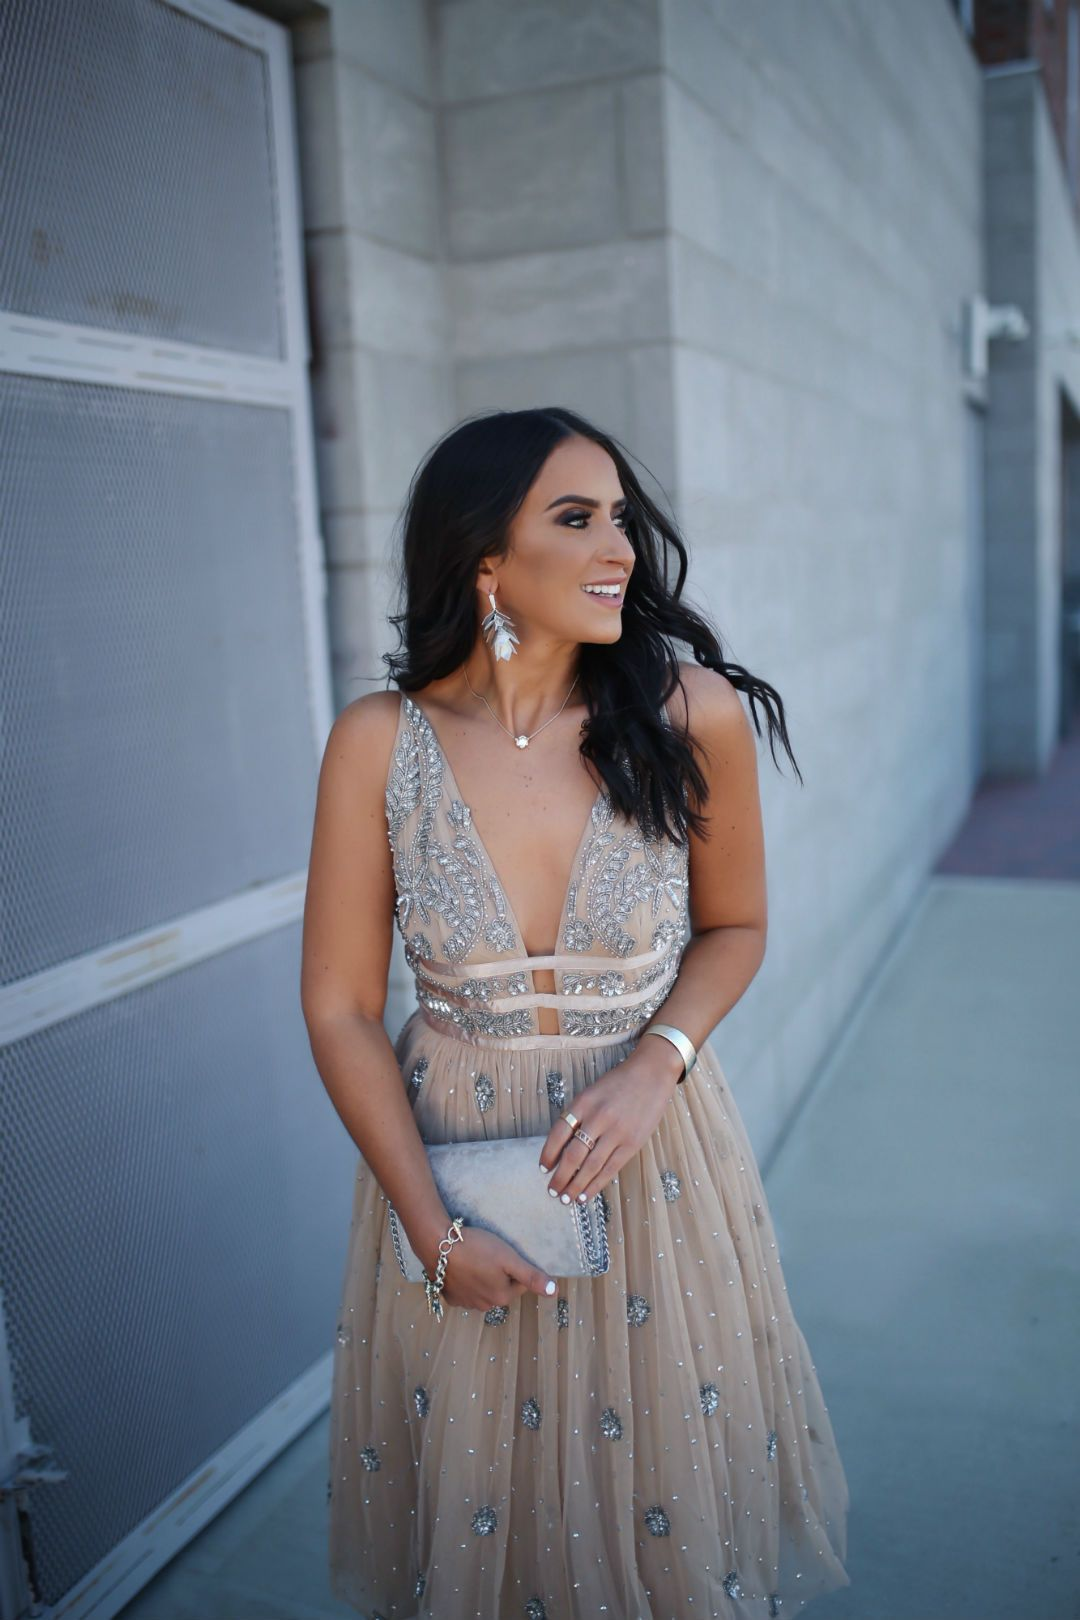 The Perfect Spring Wedding Guest Dress The House Of Sequins Spring Wedding Guest Dress Formal Wedding Guest Dress Wedding Guest Dress [ 1620 x 1080 Pixel ]